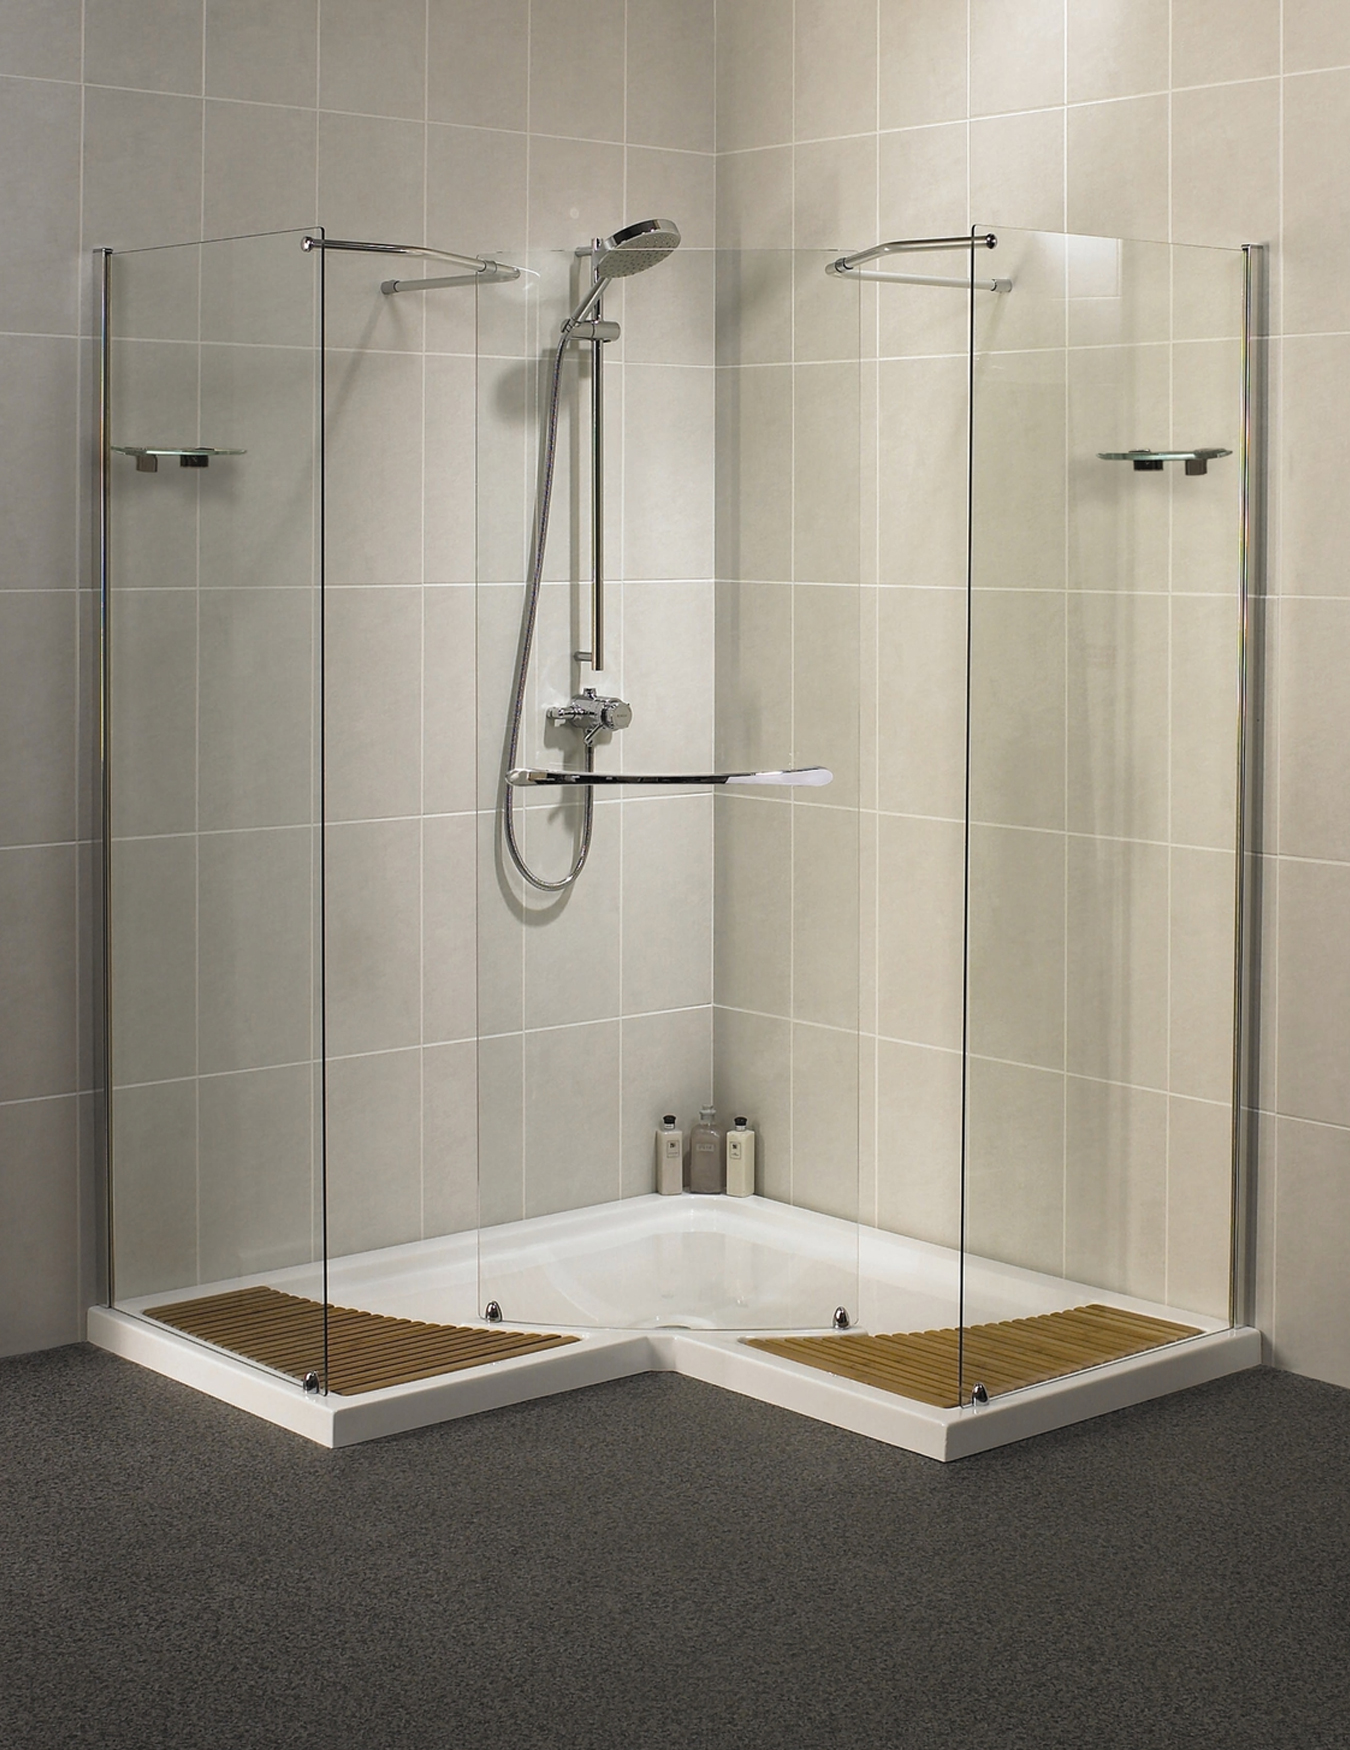 FREE STANDING SHOWER DOORS Archives Bliss Bath And Kitchen